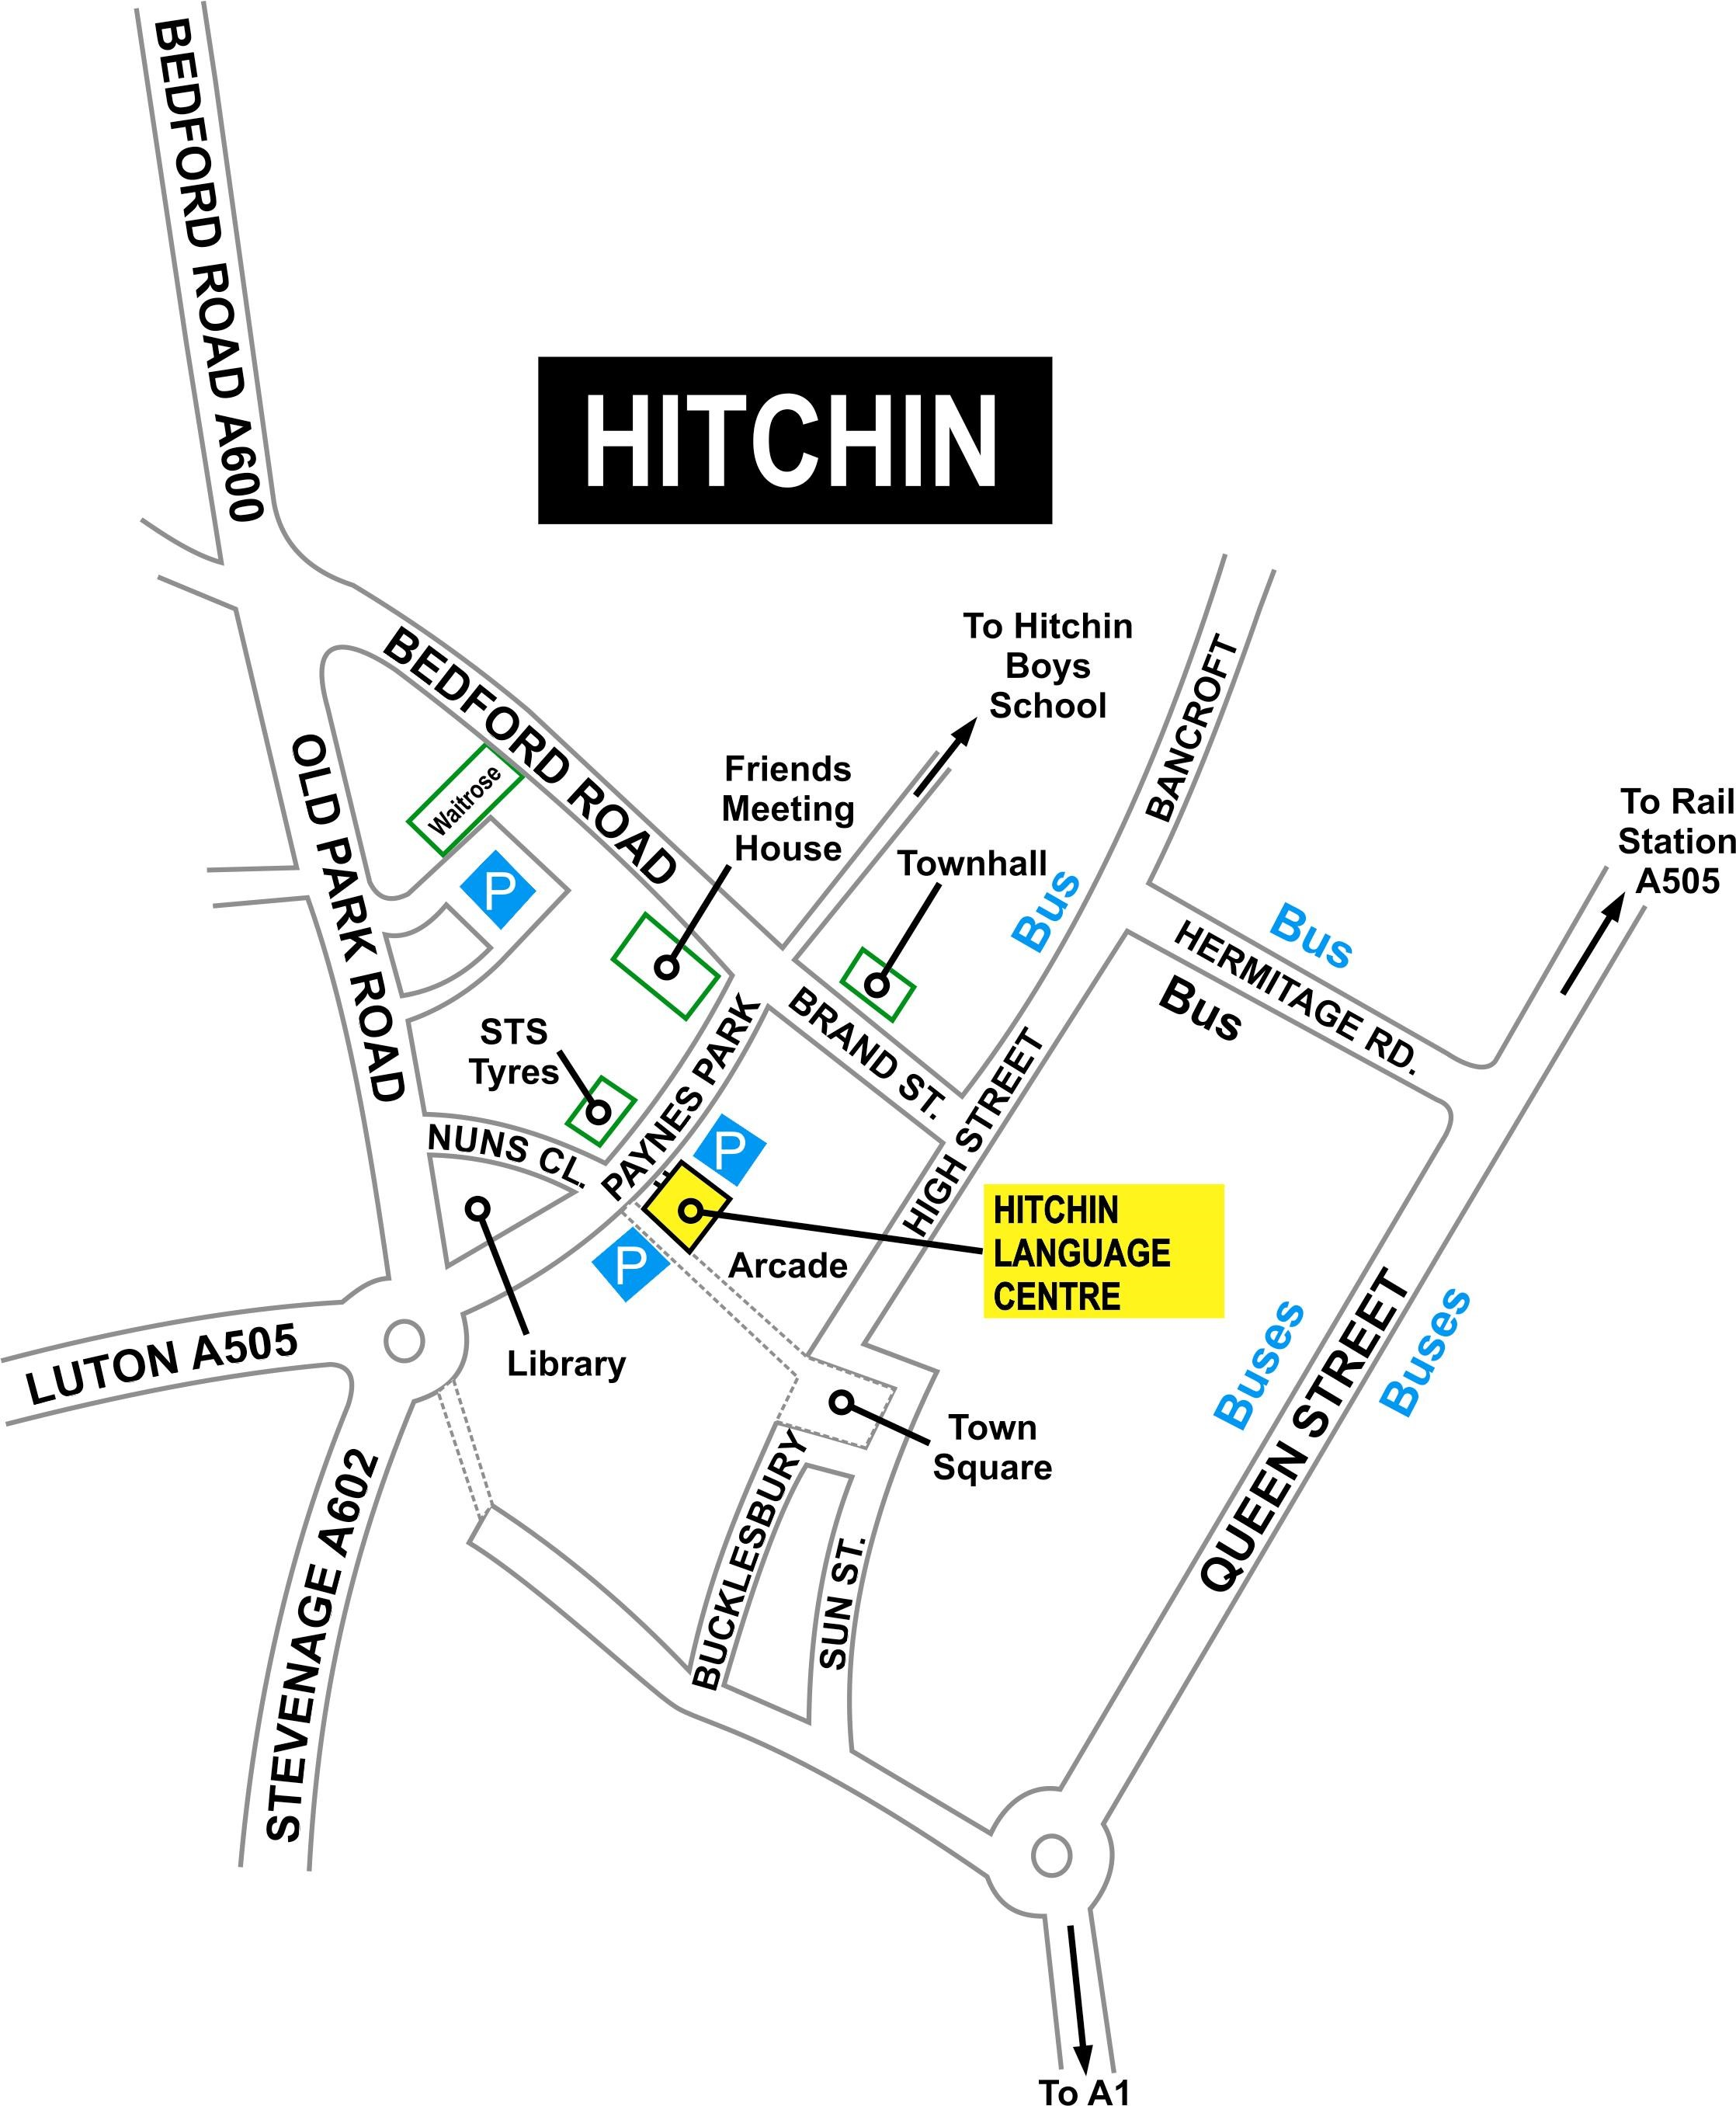 Street Map showing Hitchin Language Centre